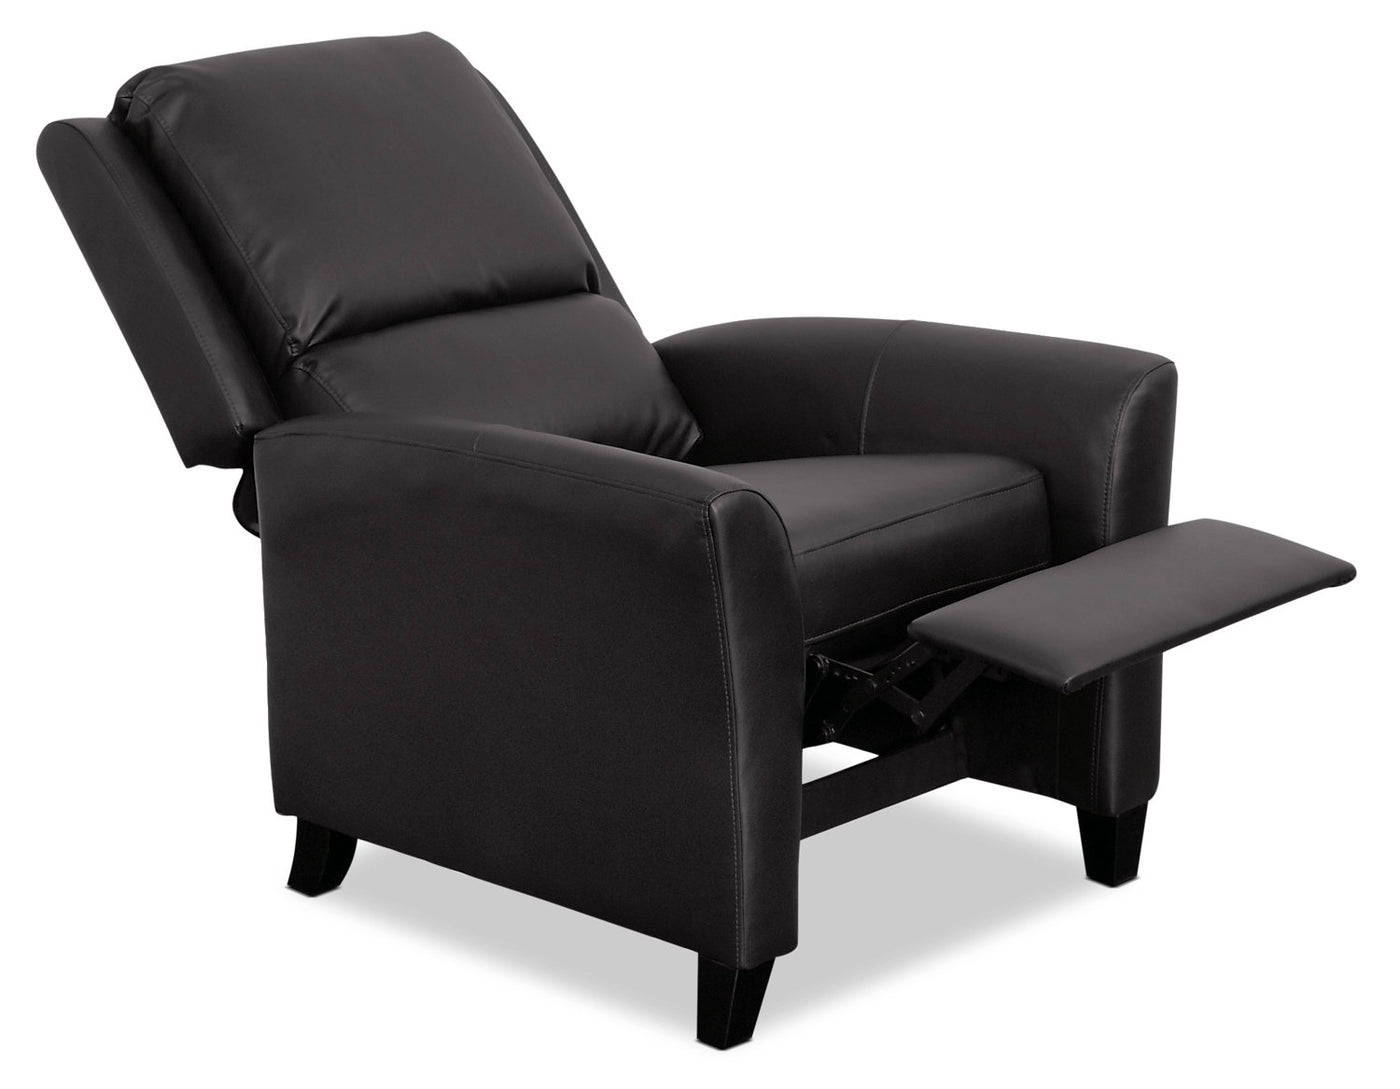 Prime Zoe Bonded Leather Accent Reclining Chair With Flared Arms Black Pdpeps Interior Chair Design Pdpepsorg